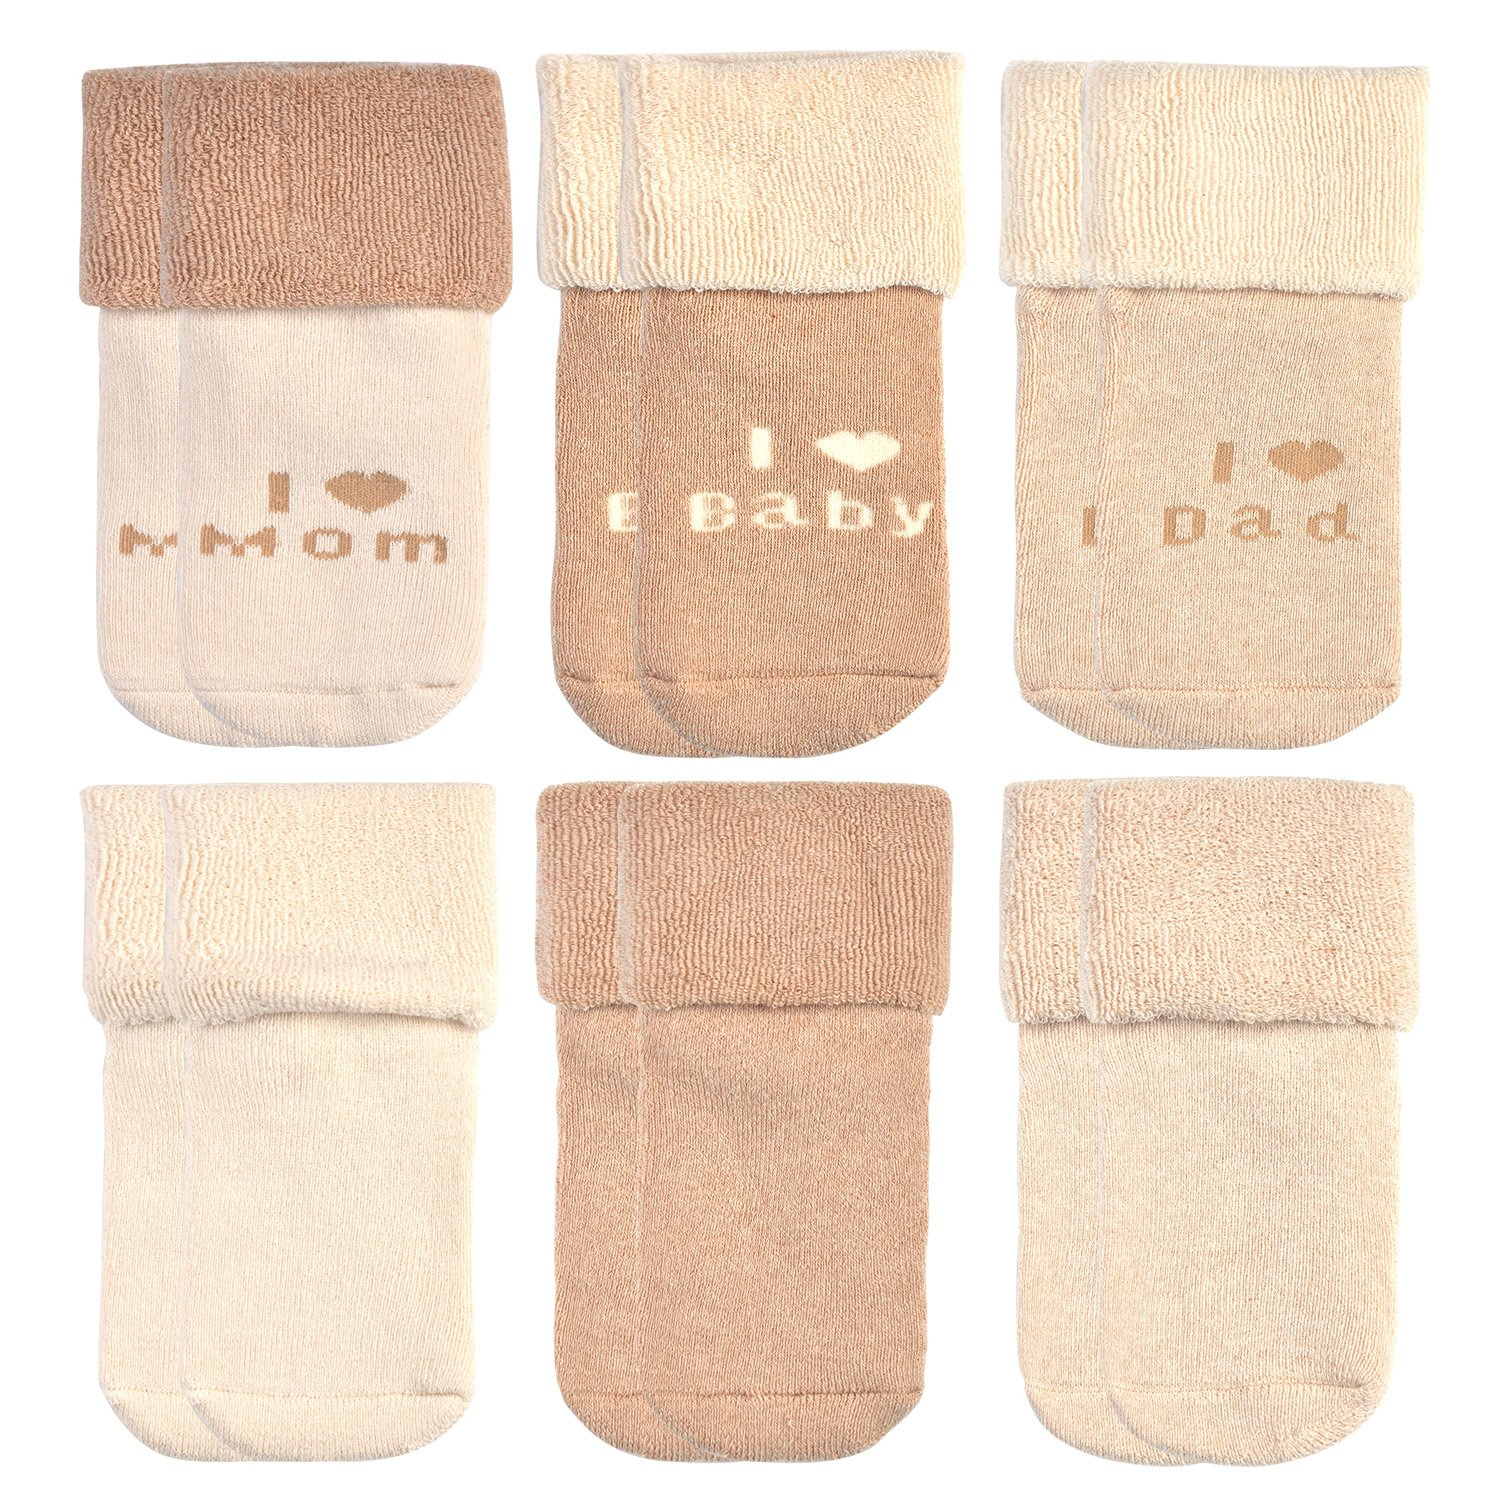 Epeius Unisex-Baby Newborn Organic Cotton Socks for 0-6 Months,Super Soft Cotton Terry Booties (Pack of 6),Beige,I Love Dad I Love Mom